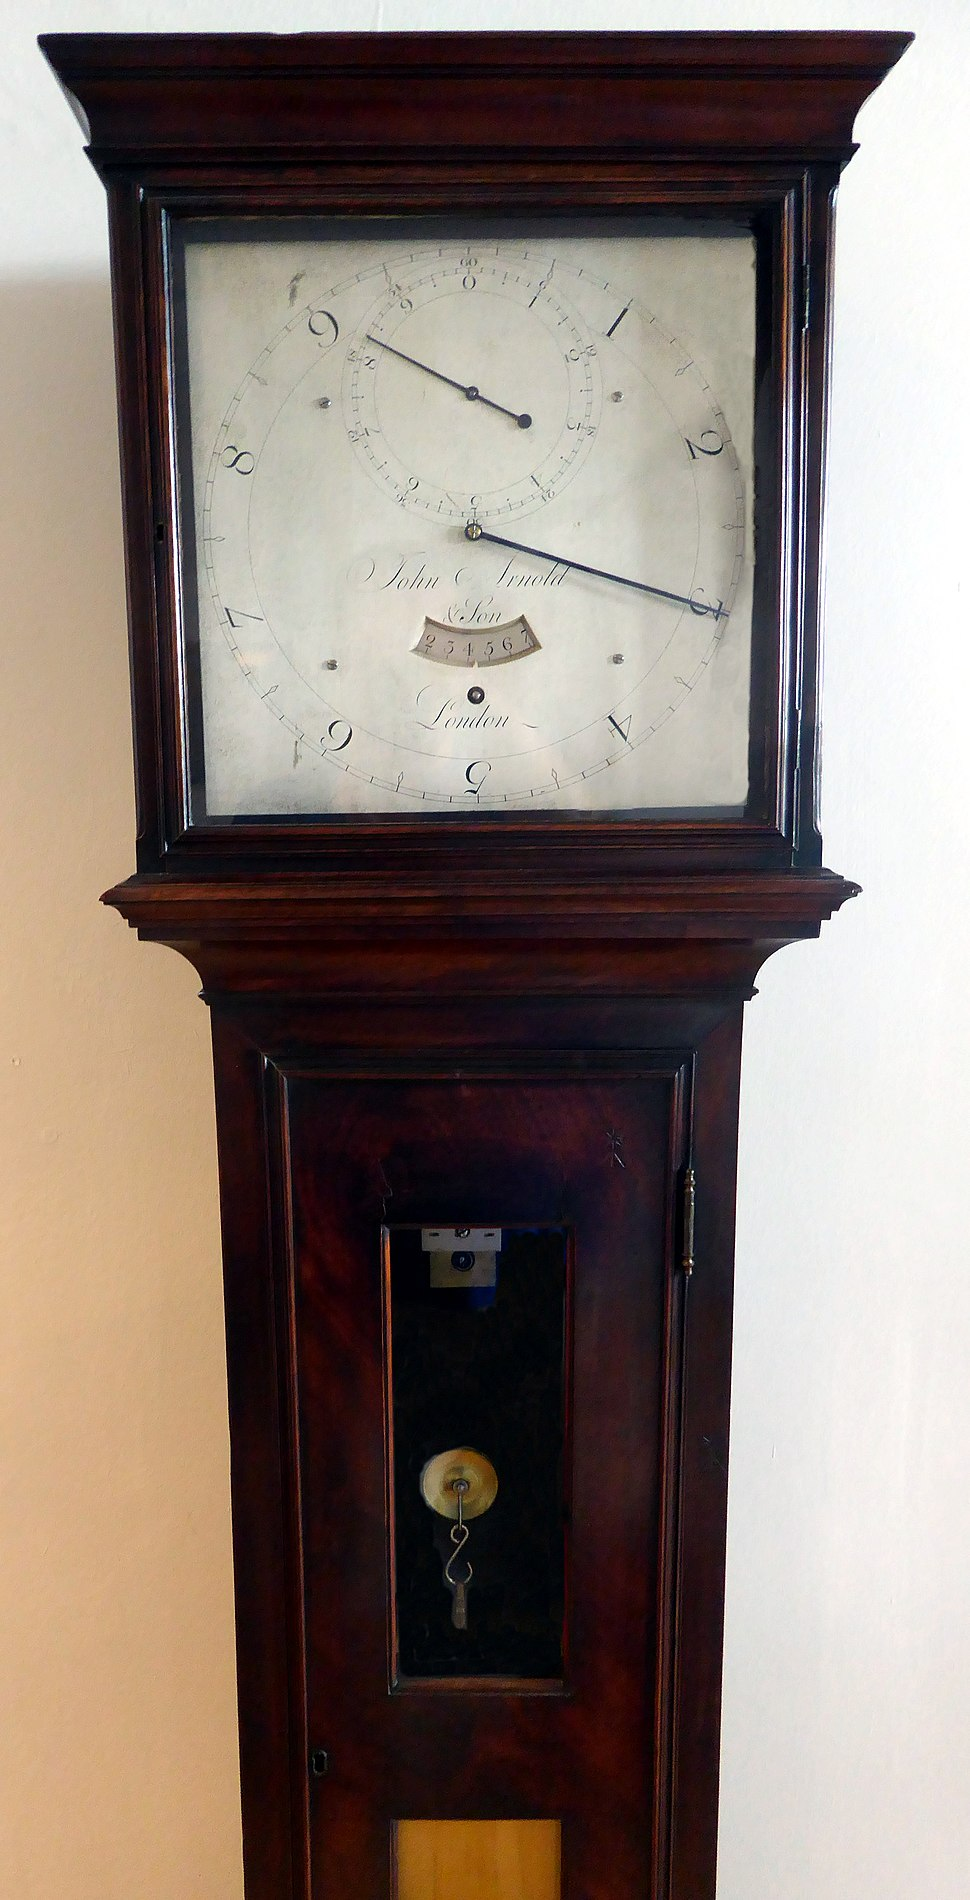 Sidereal Clock made for Sir George Augustus William Shuckburgh